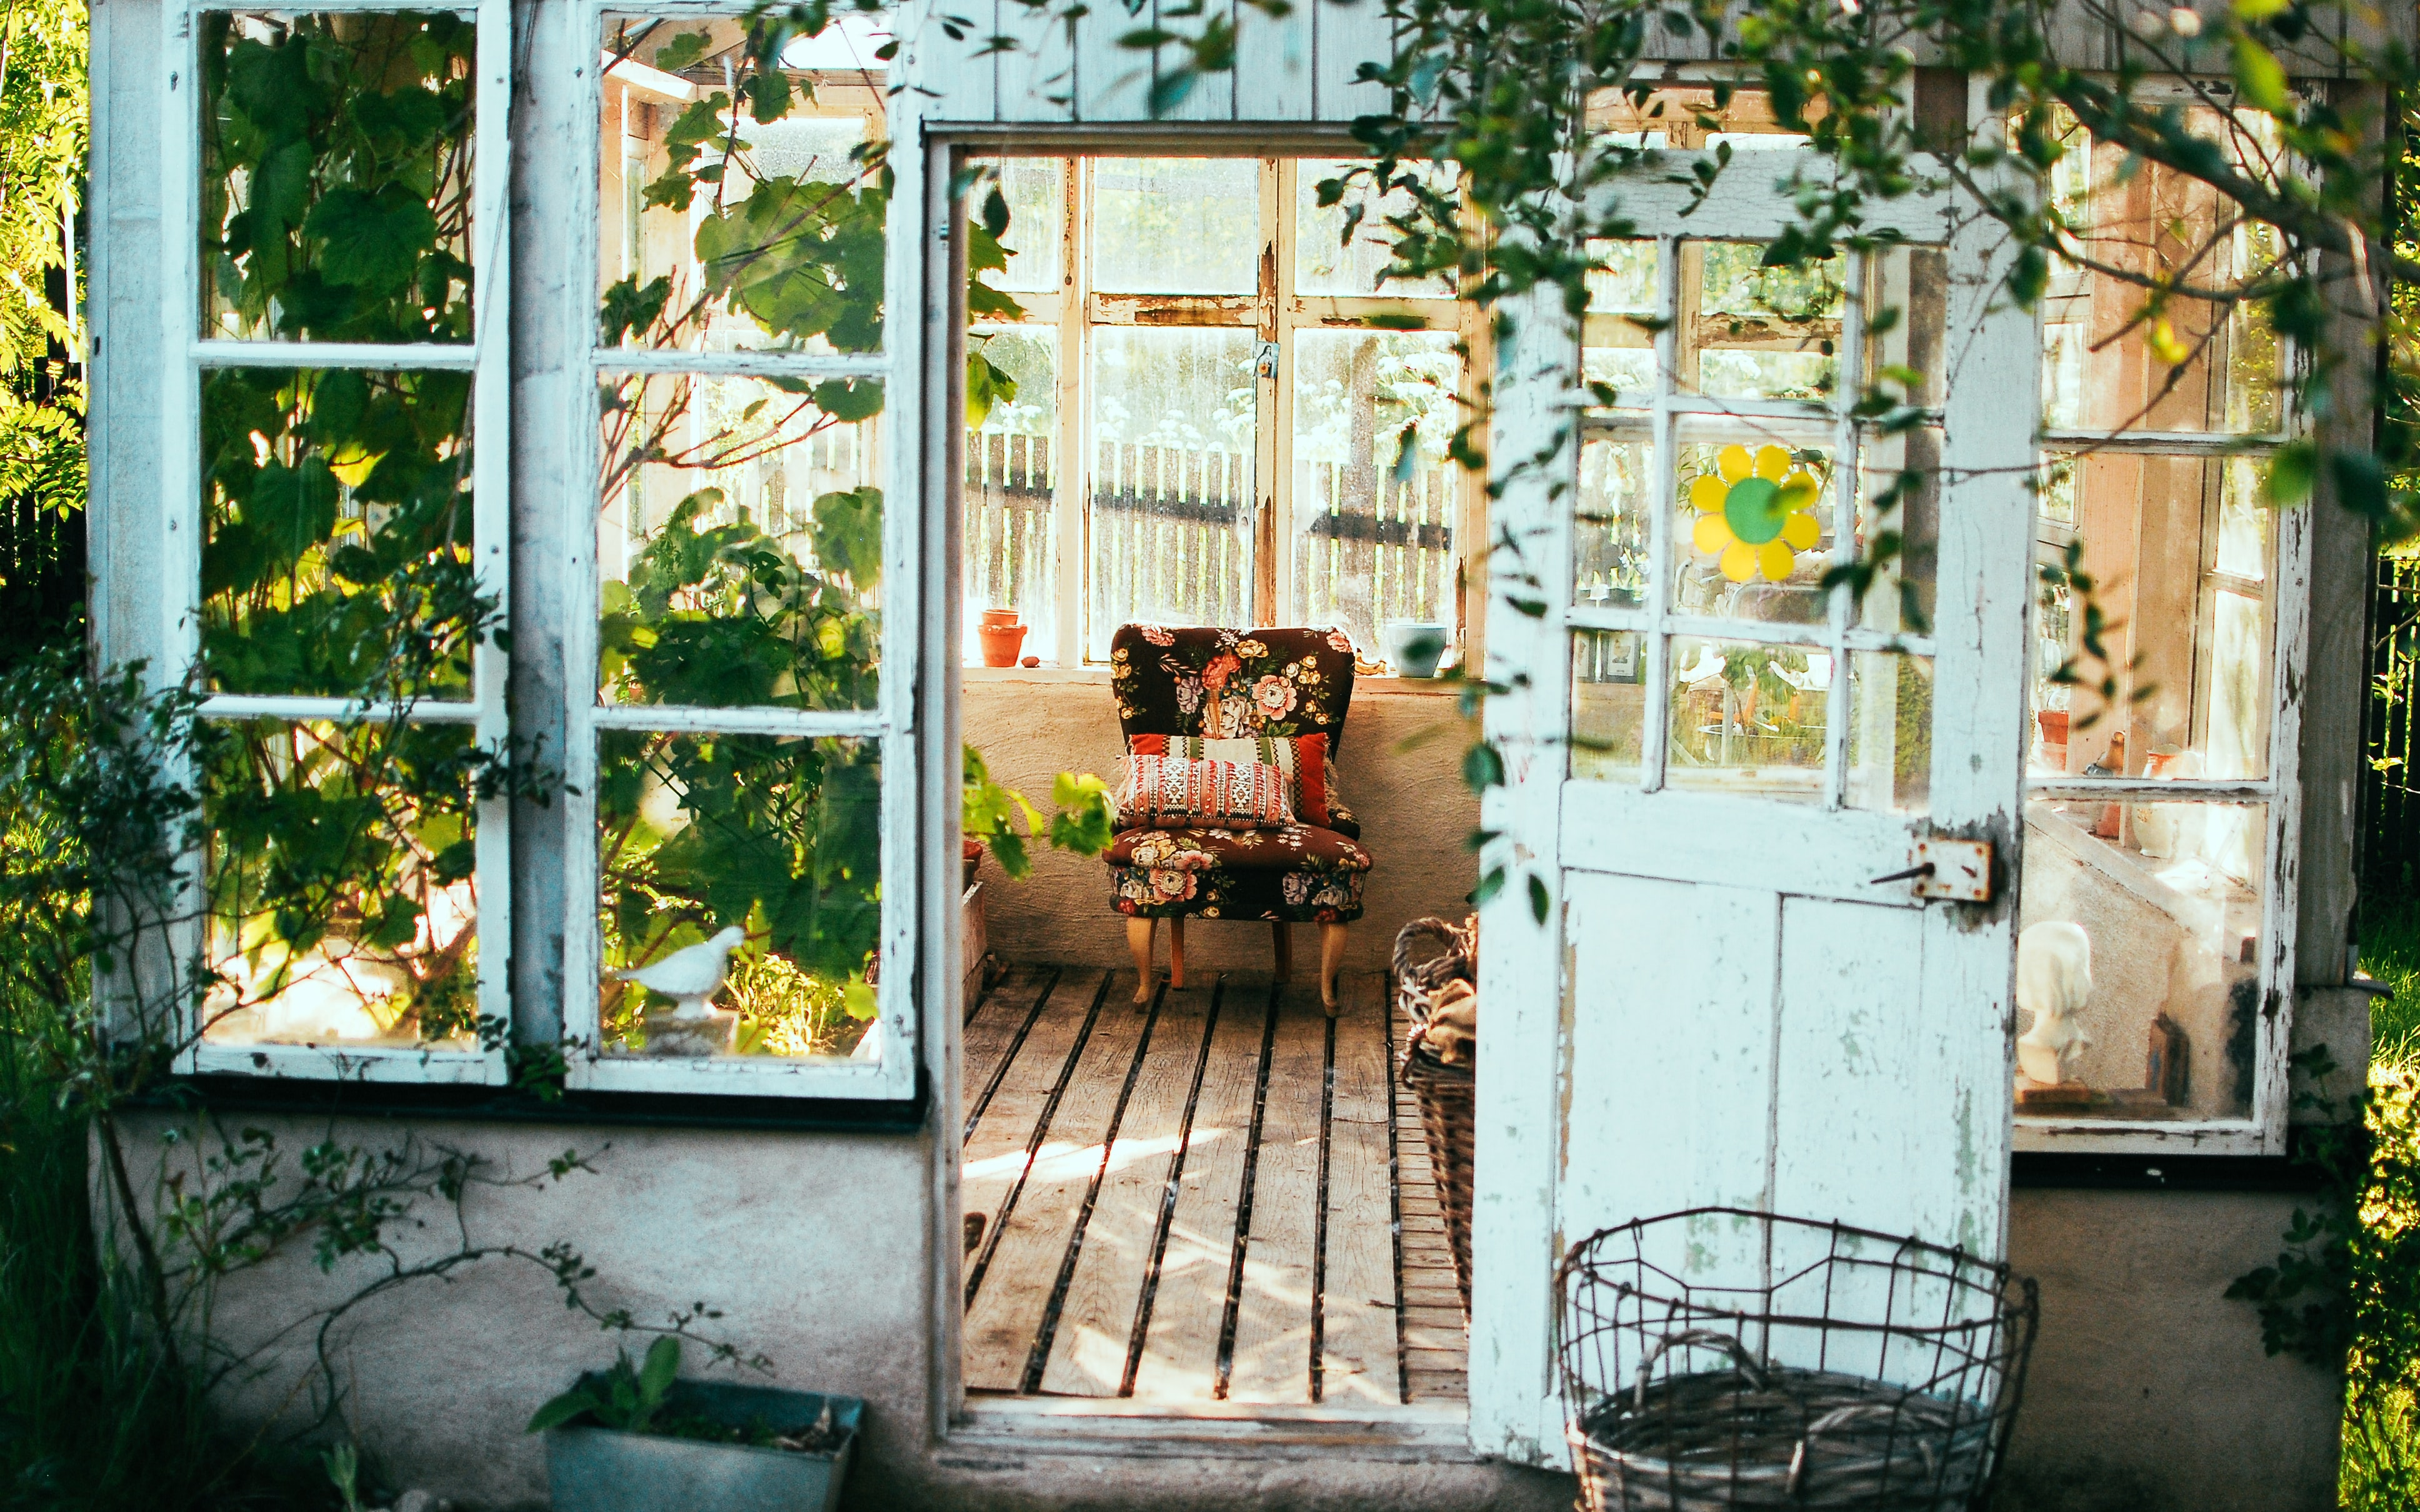 Exquisite greenhouse surrounded by sunflowers  with colorful folding chair inside